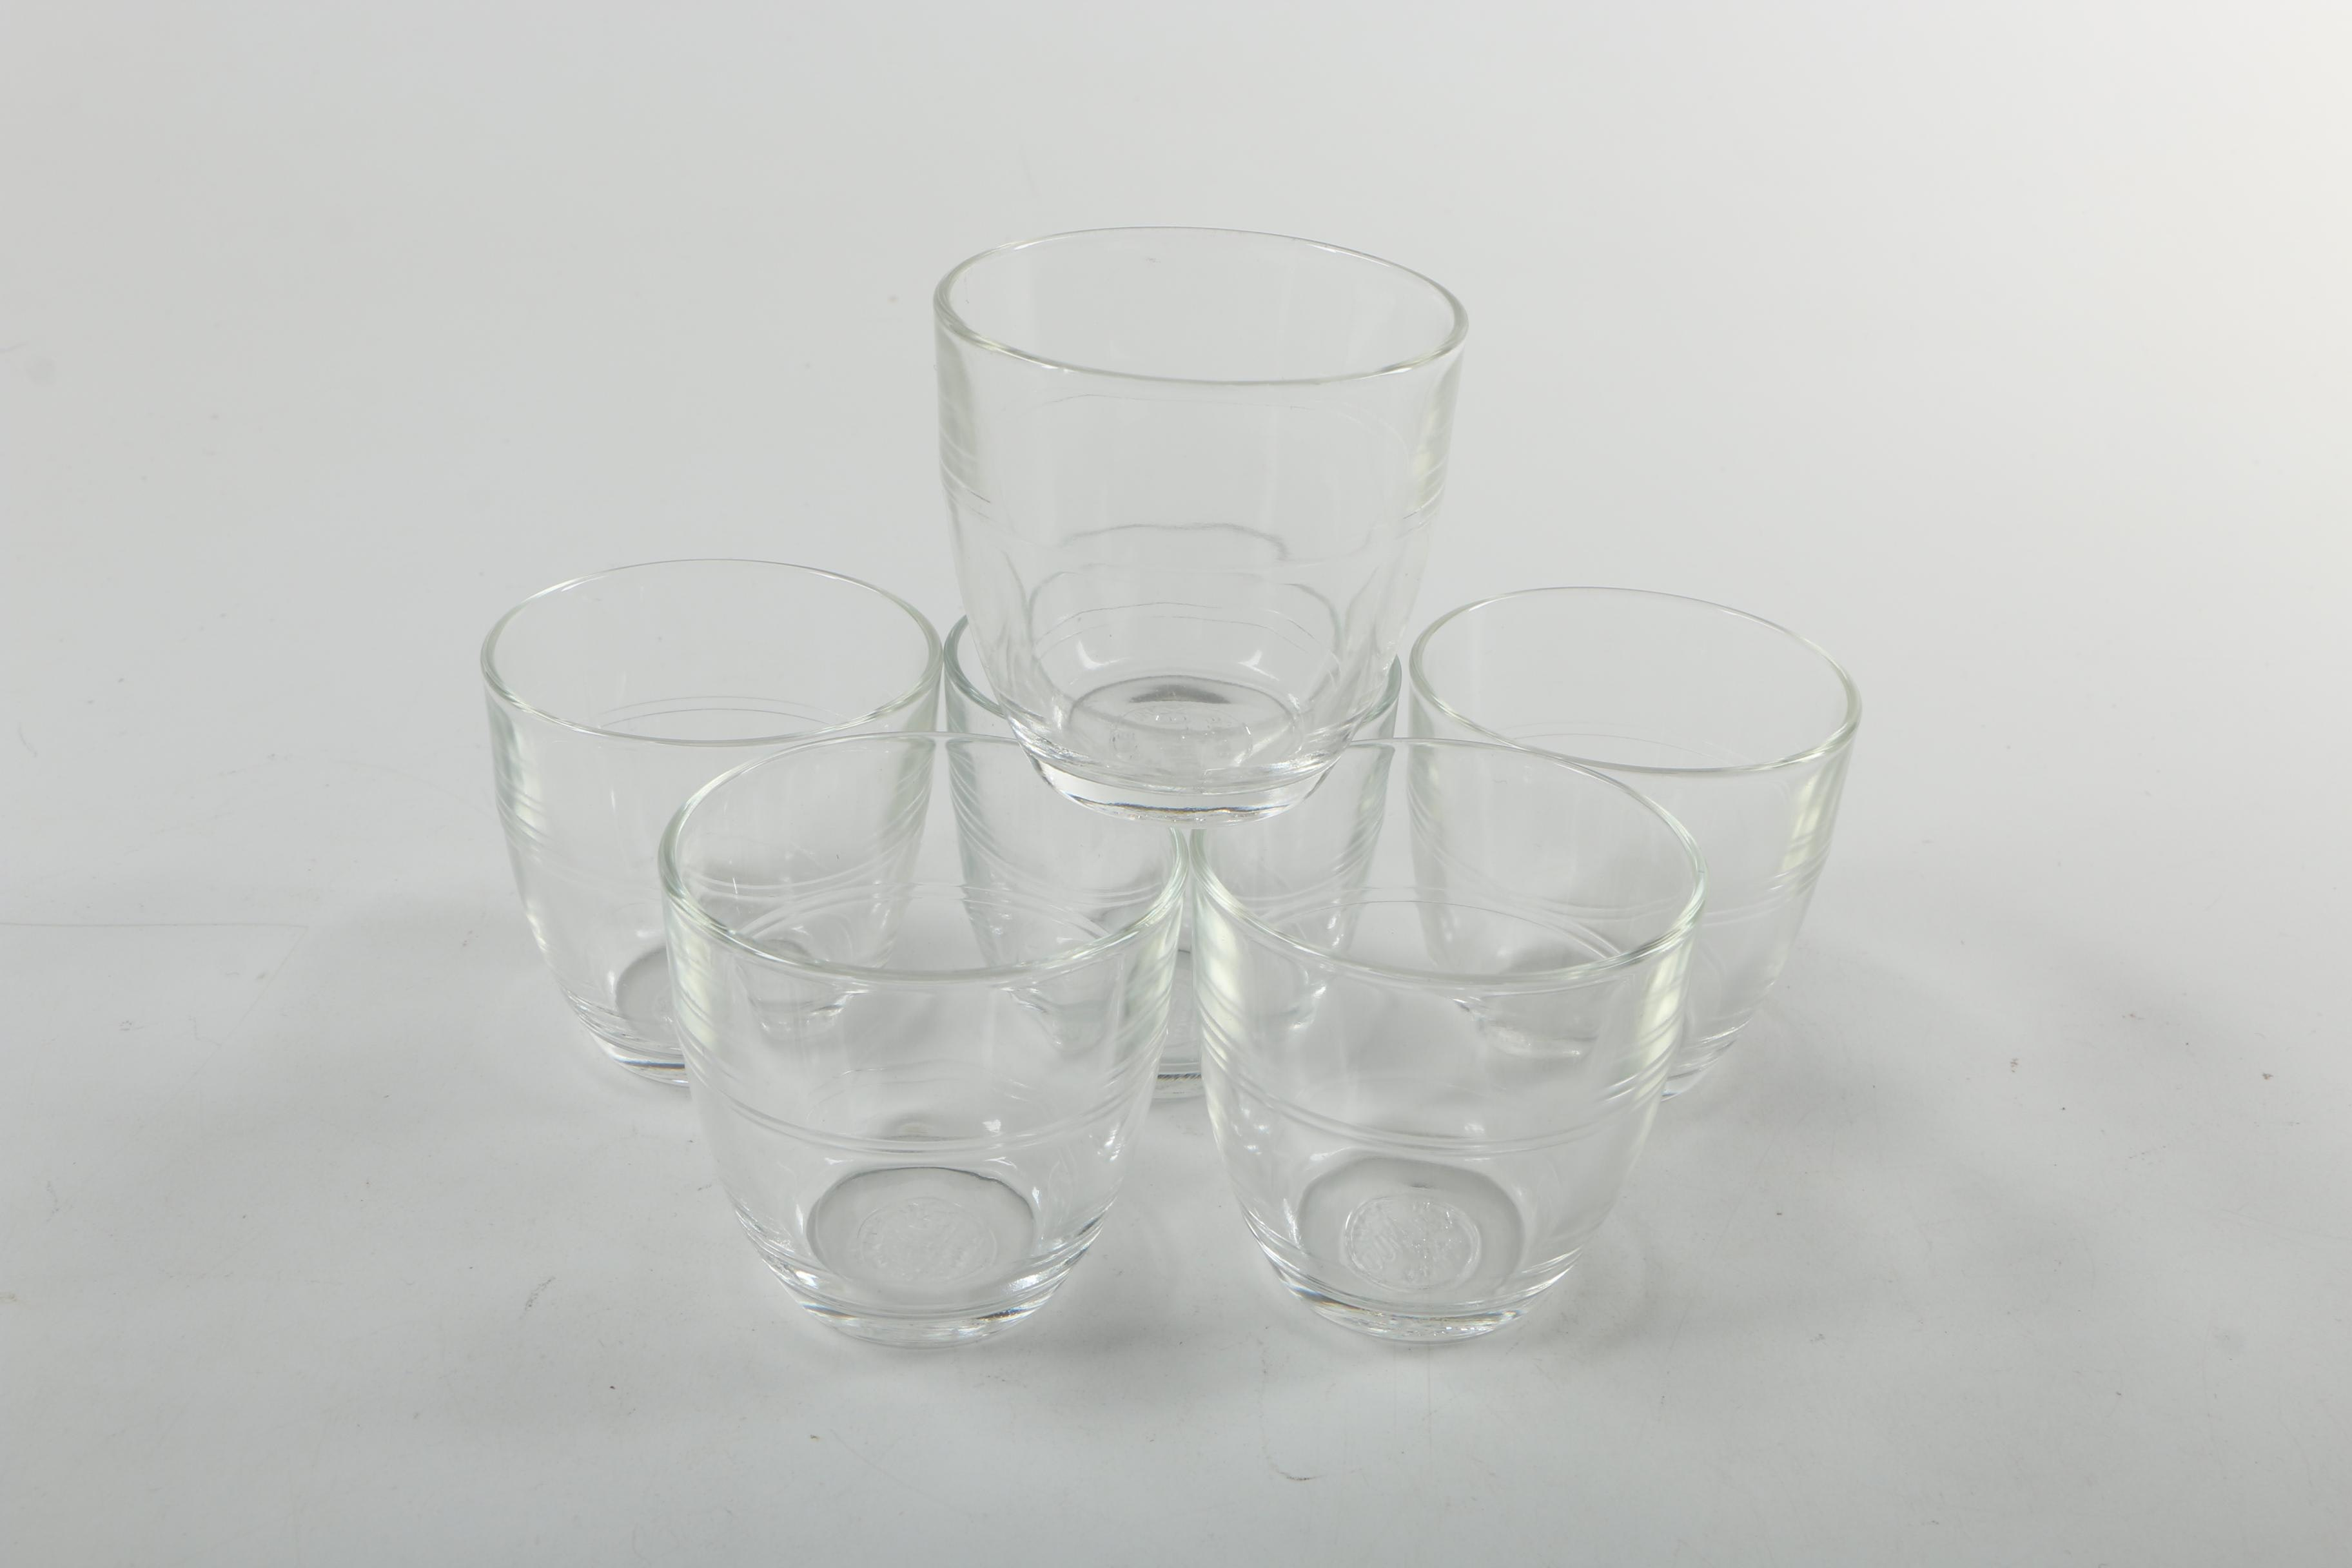 Duralex Clear Glass Tumblers